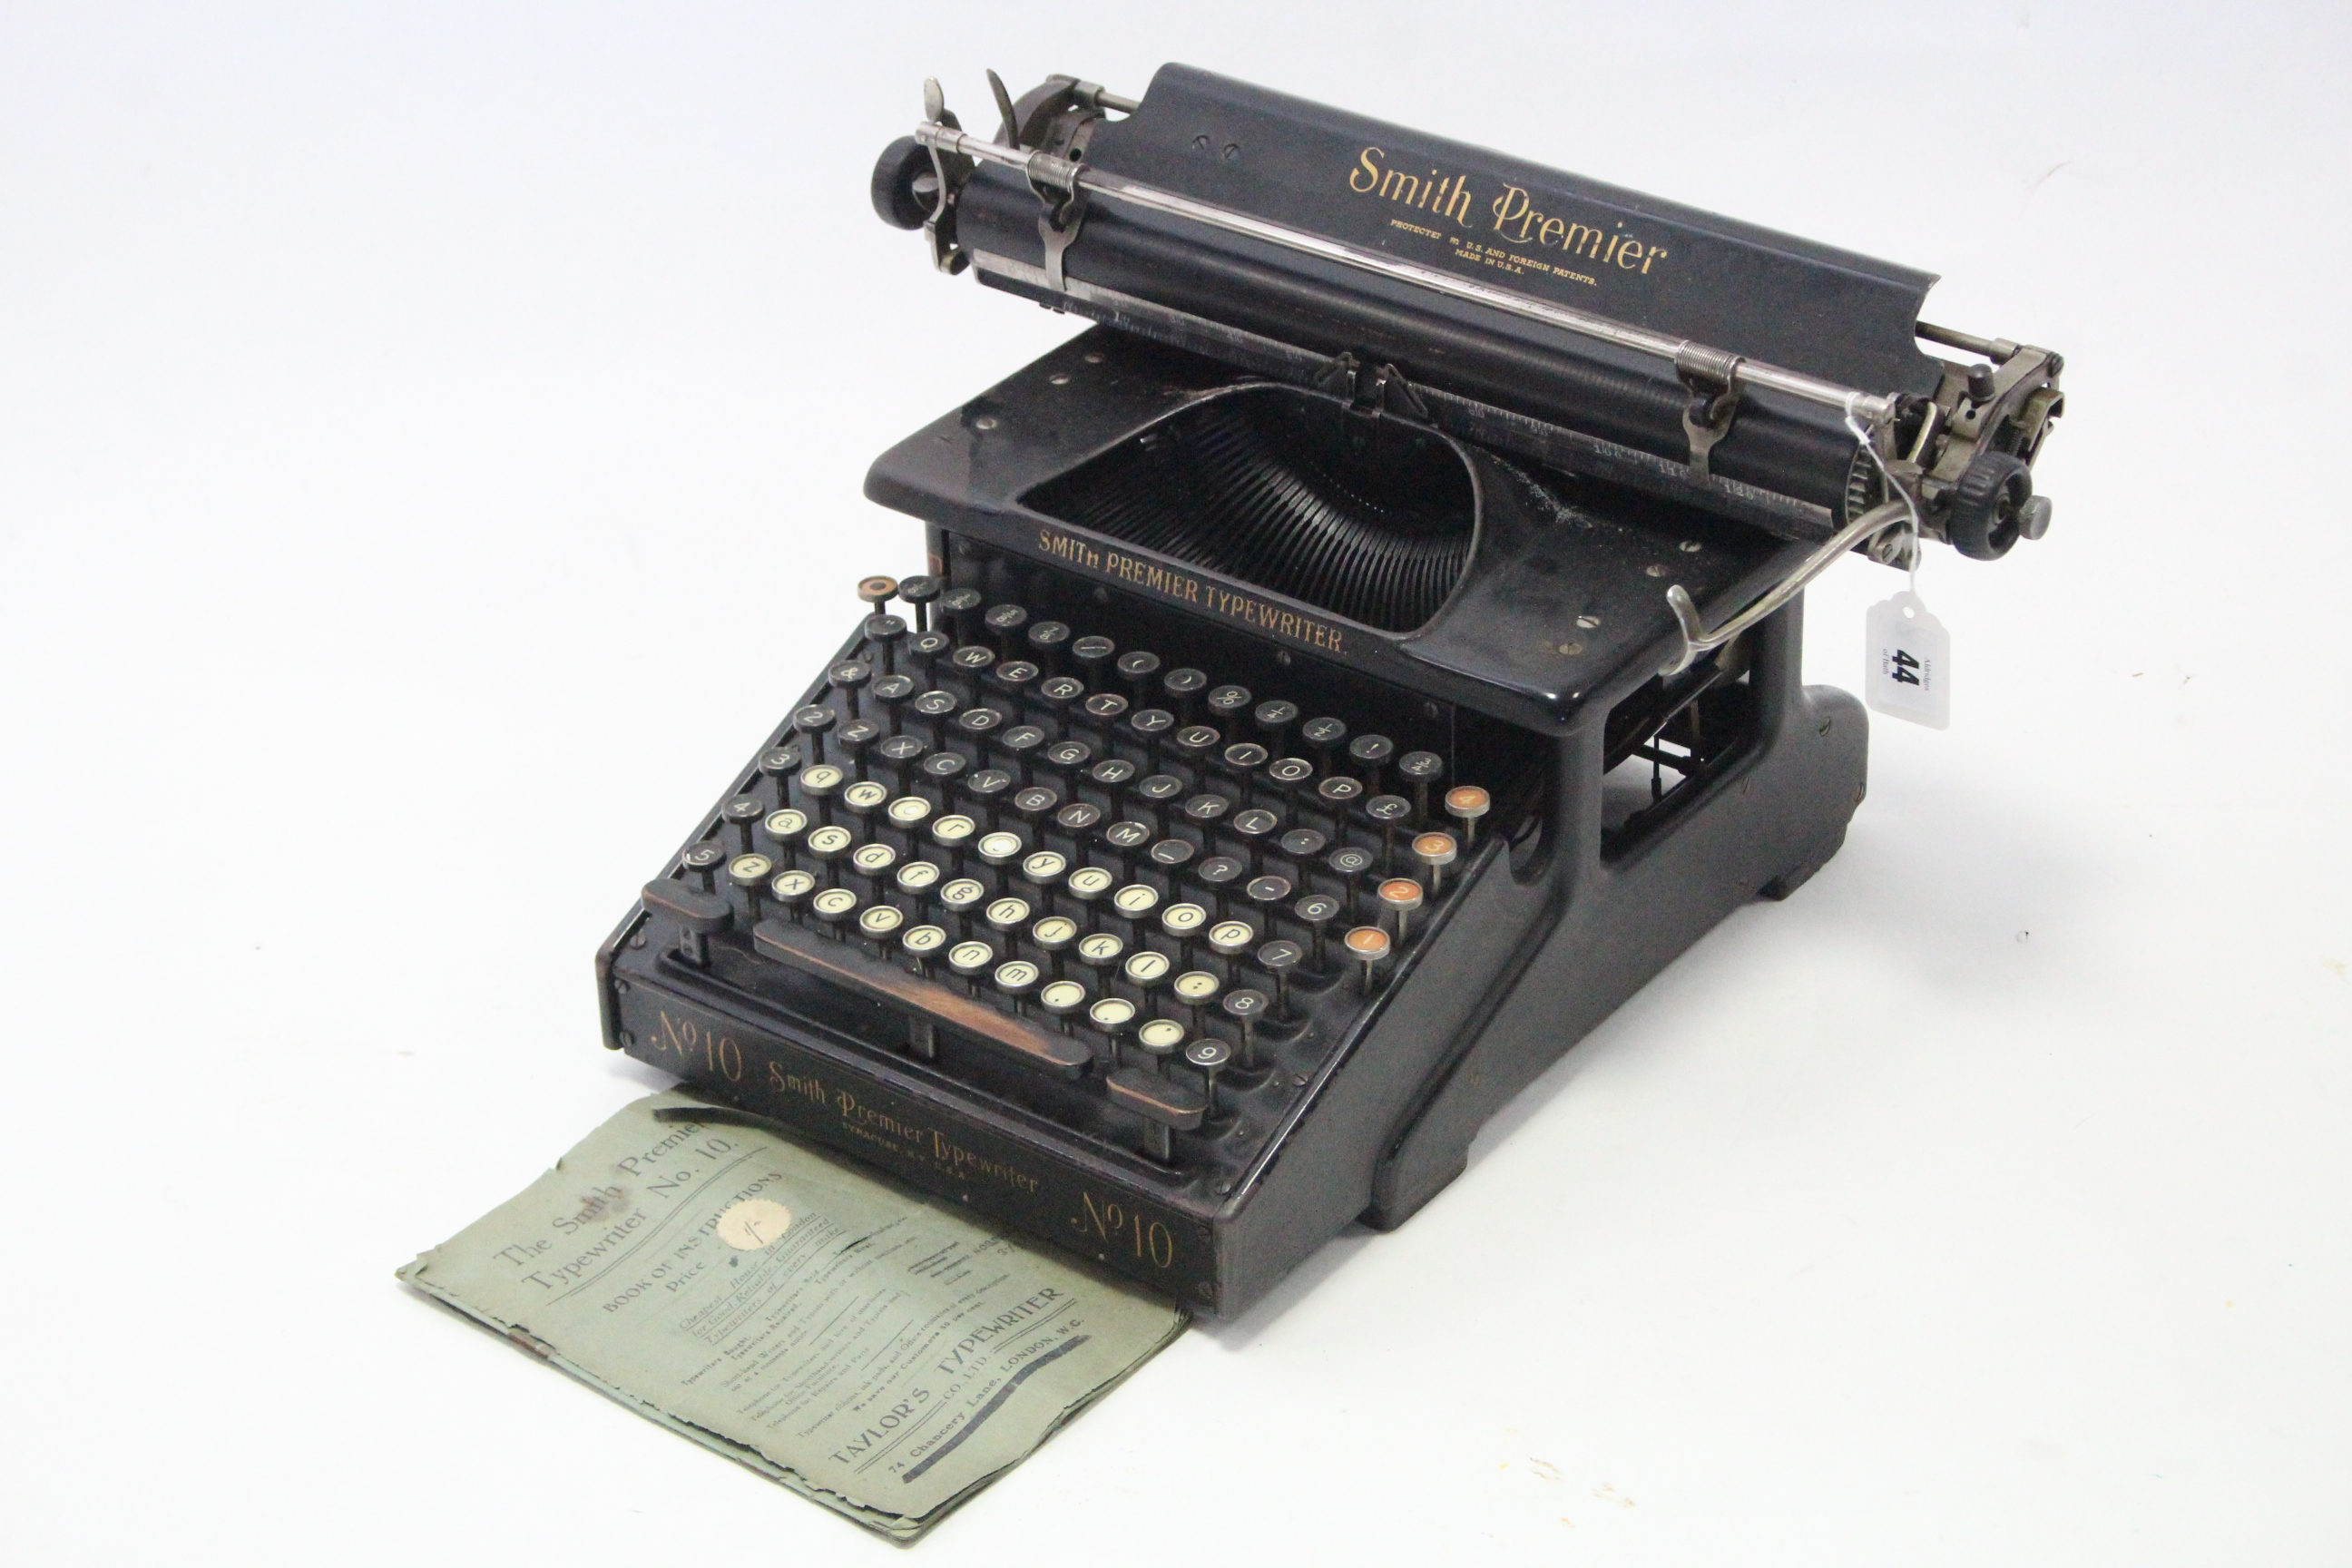 """Lot 44 - A vintage Smith Premier """"No. 10"""" typewriter, with cover."""